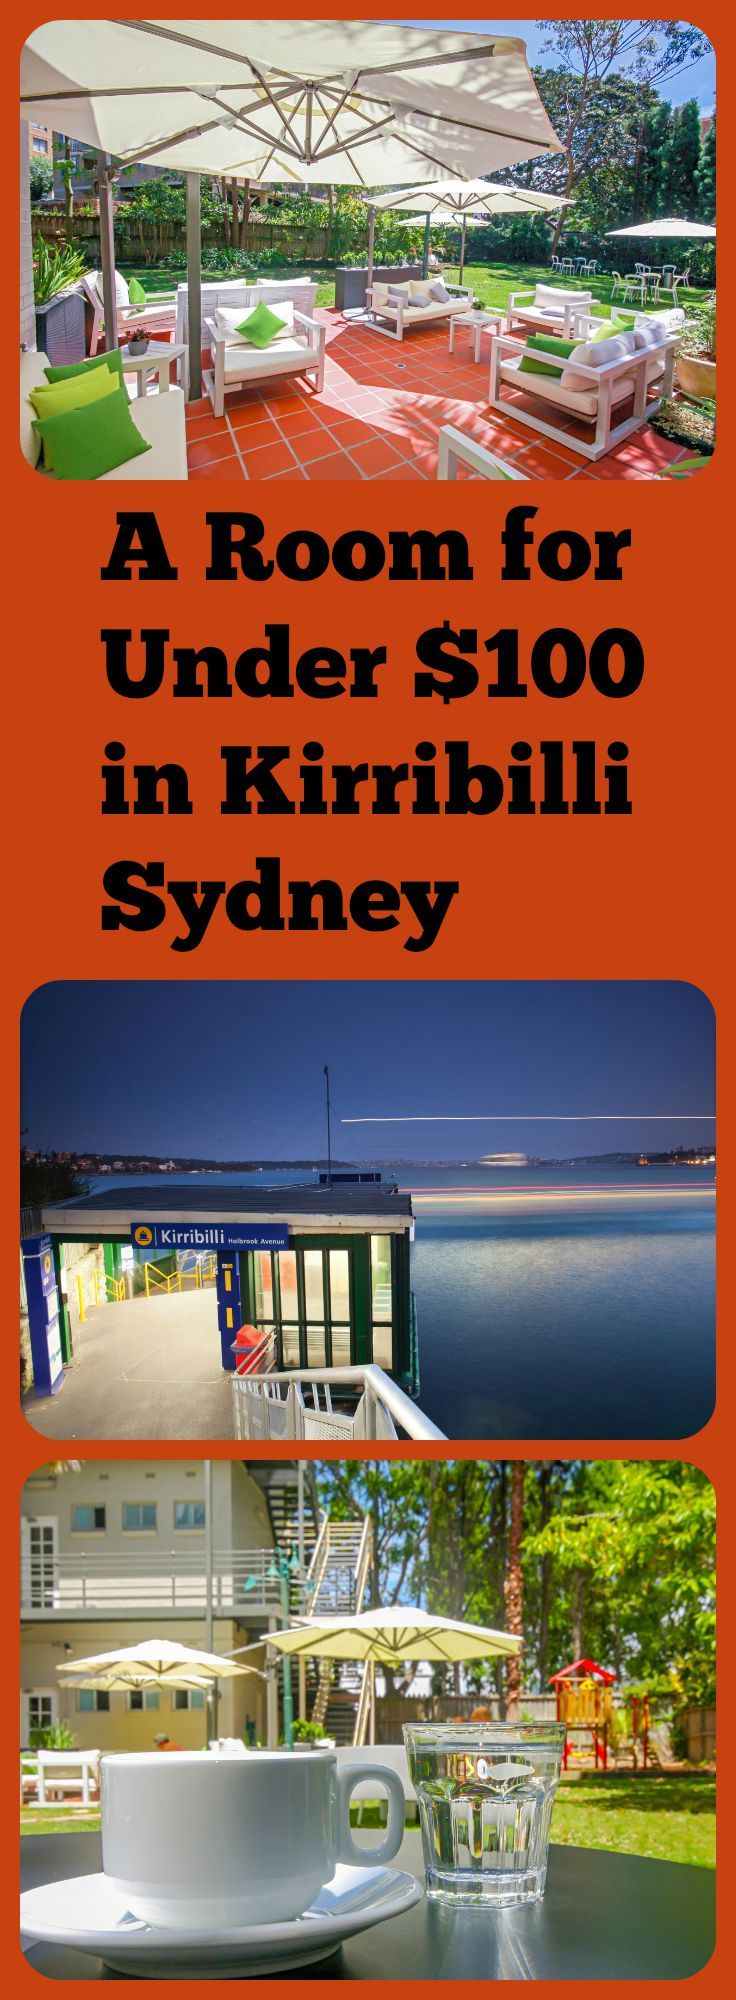 Sydney's exclusive harbour side suburb of Kirribilli isn't where most people would expect budget boutique hotels. But there is a way to find a room for under $100 a night.